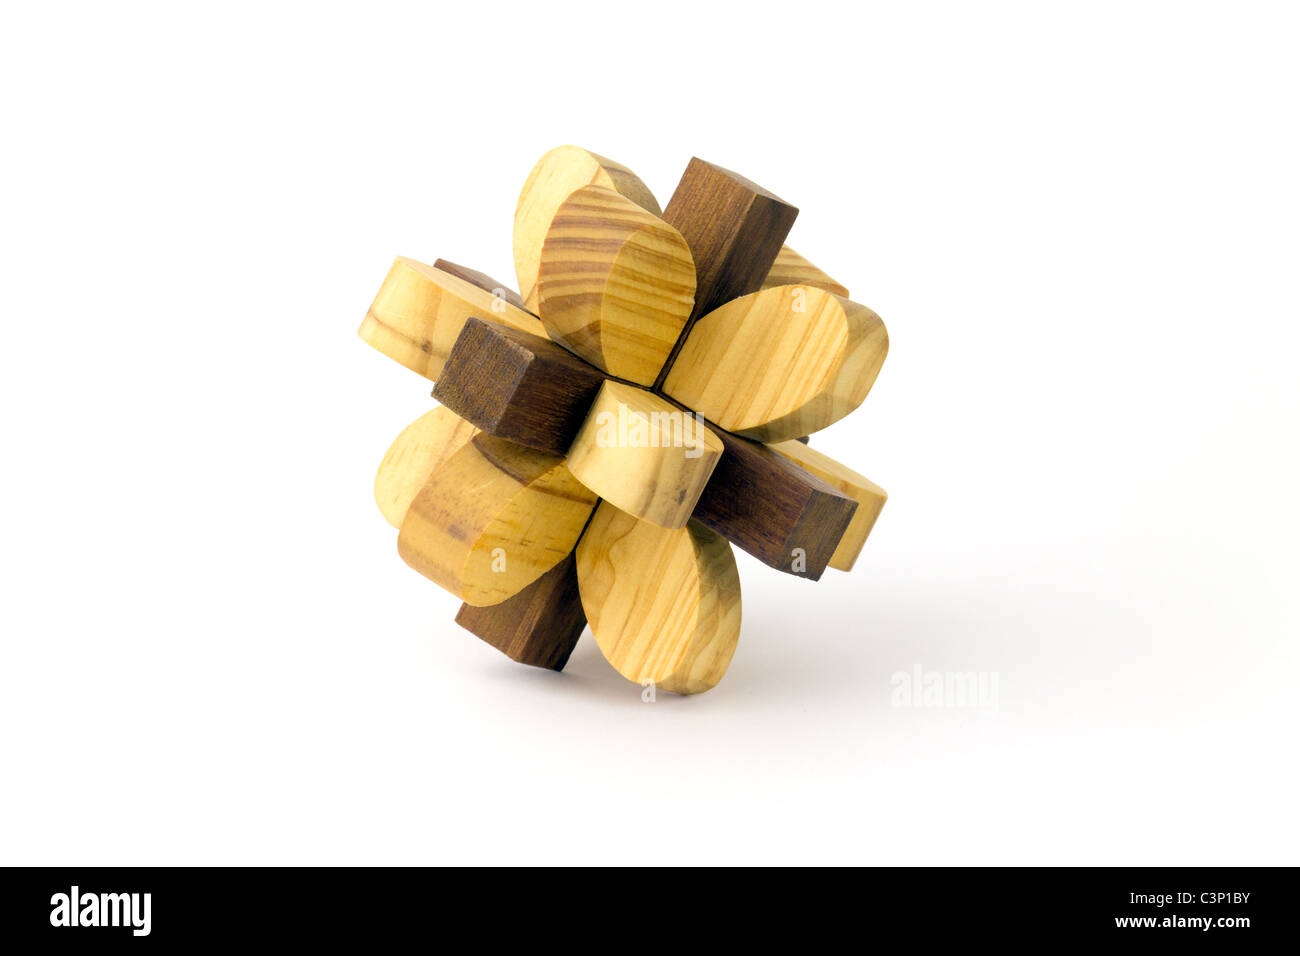 Wooden puzzle on a white background - Stock Image